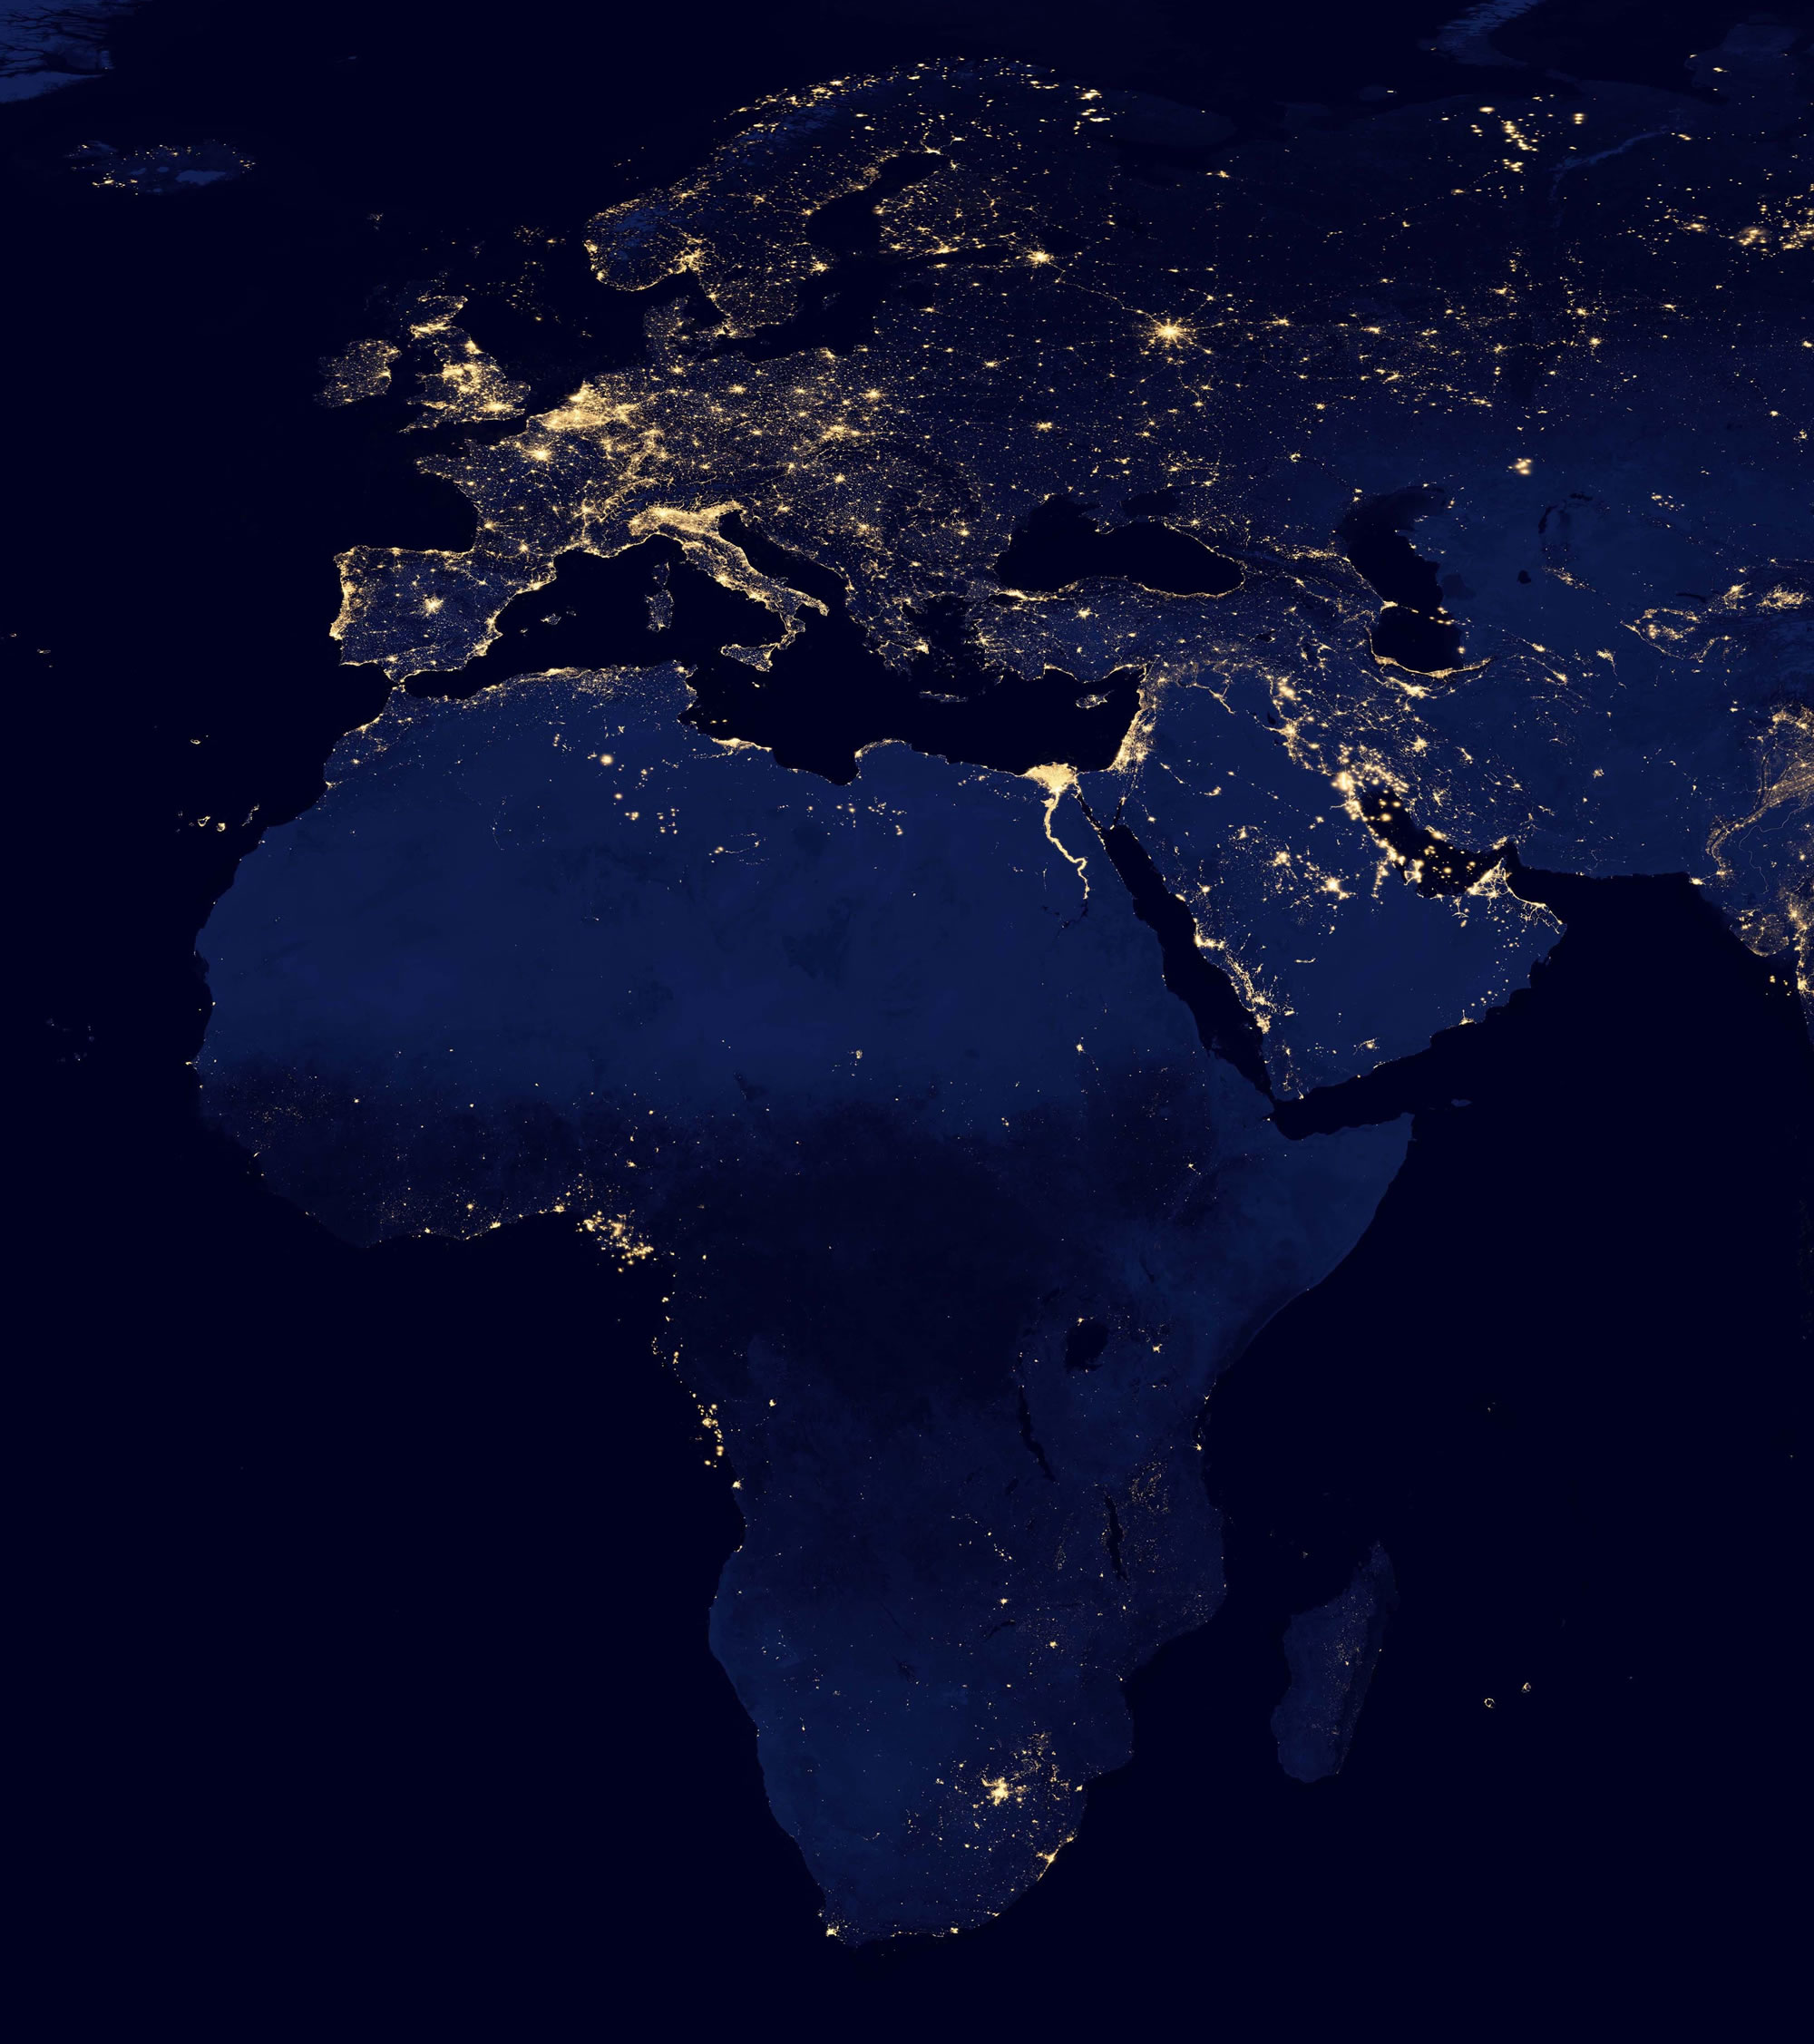 Night Satellite Photos | Earth, U.S., Europe, Asia, World